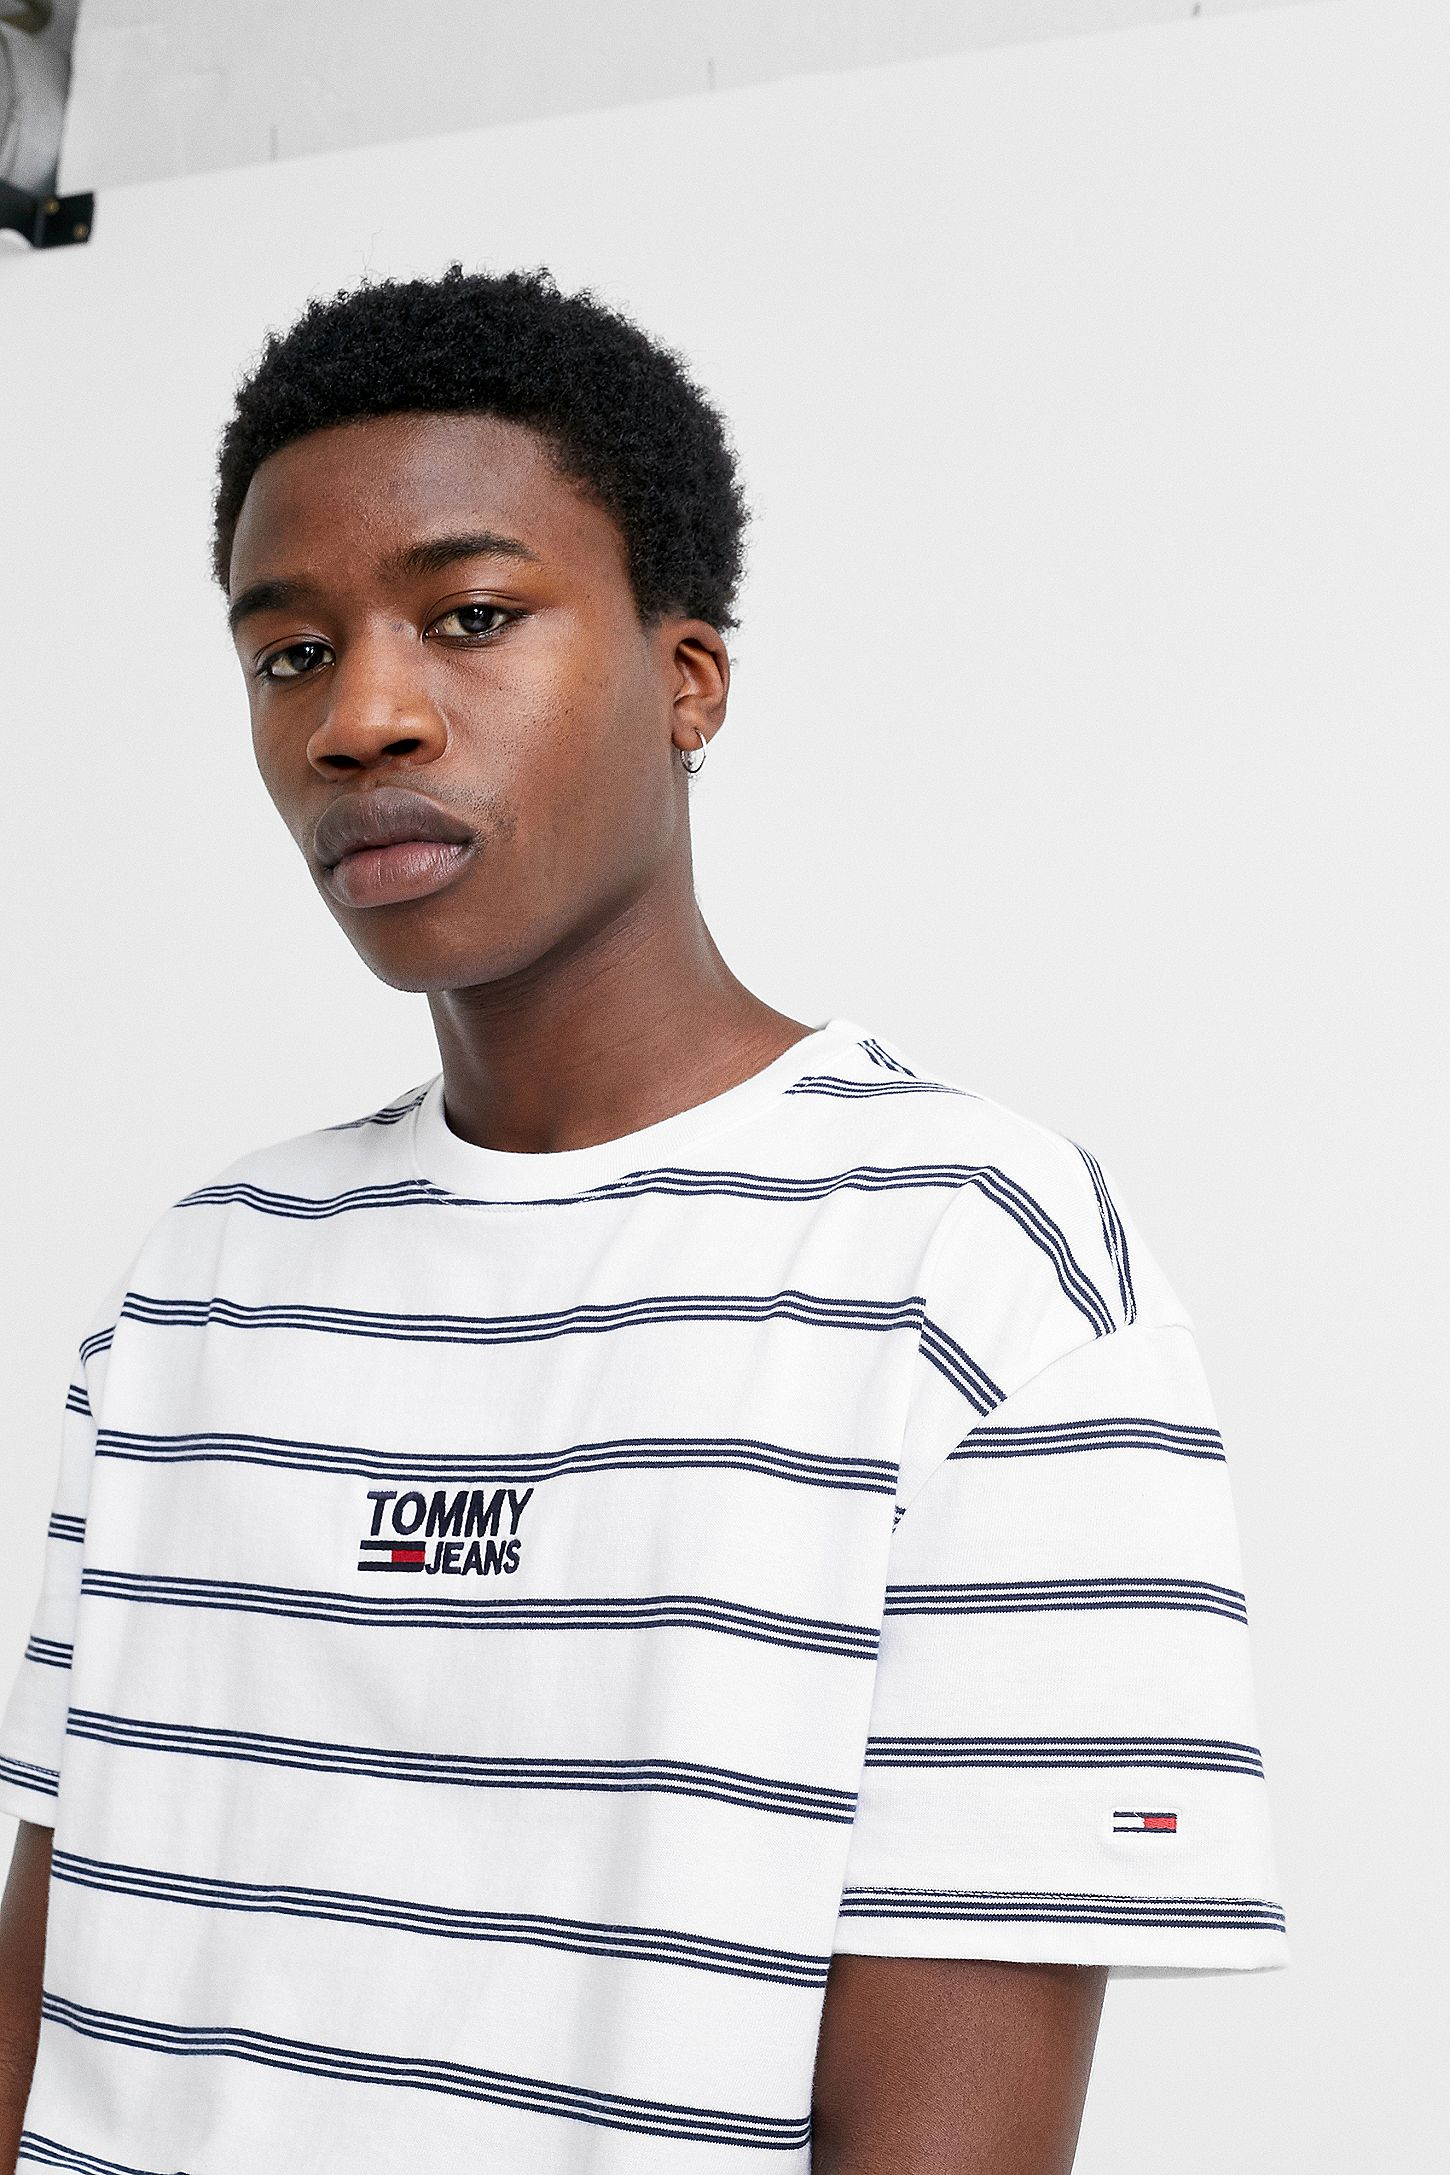 96ec7a679a Tommy Jeans White Signature Stripe T-Shirt. Click on image to zoom. Hover to  zoom. Double Tap to Zoom